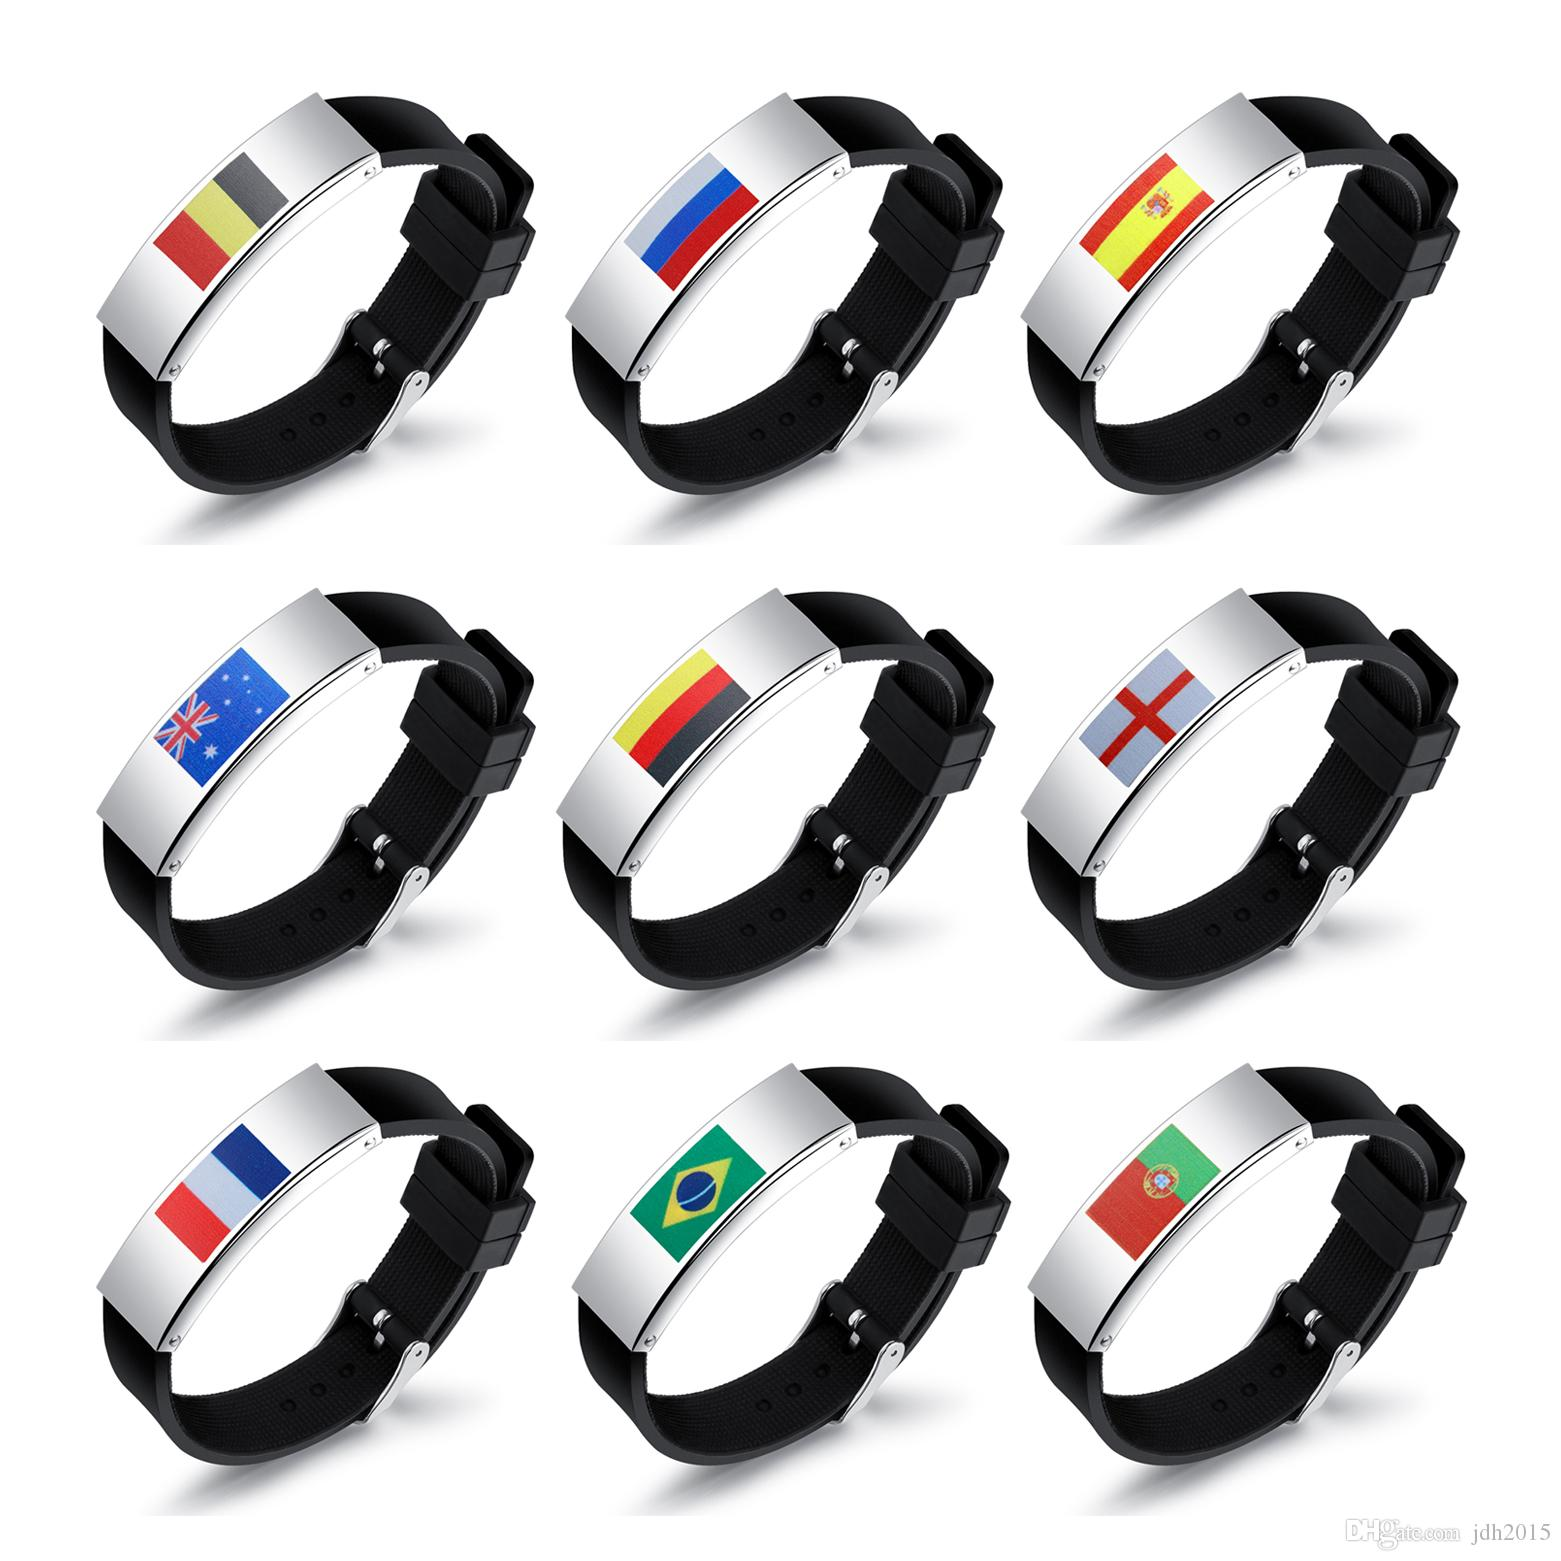 Stainless Steel Silicone Soccer Football Fan Band Bracelet - Pick Team